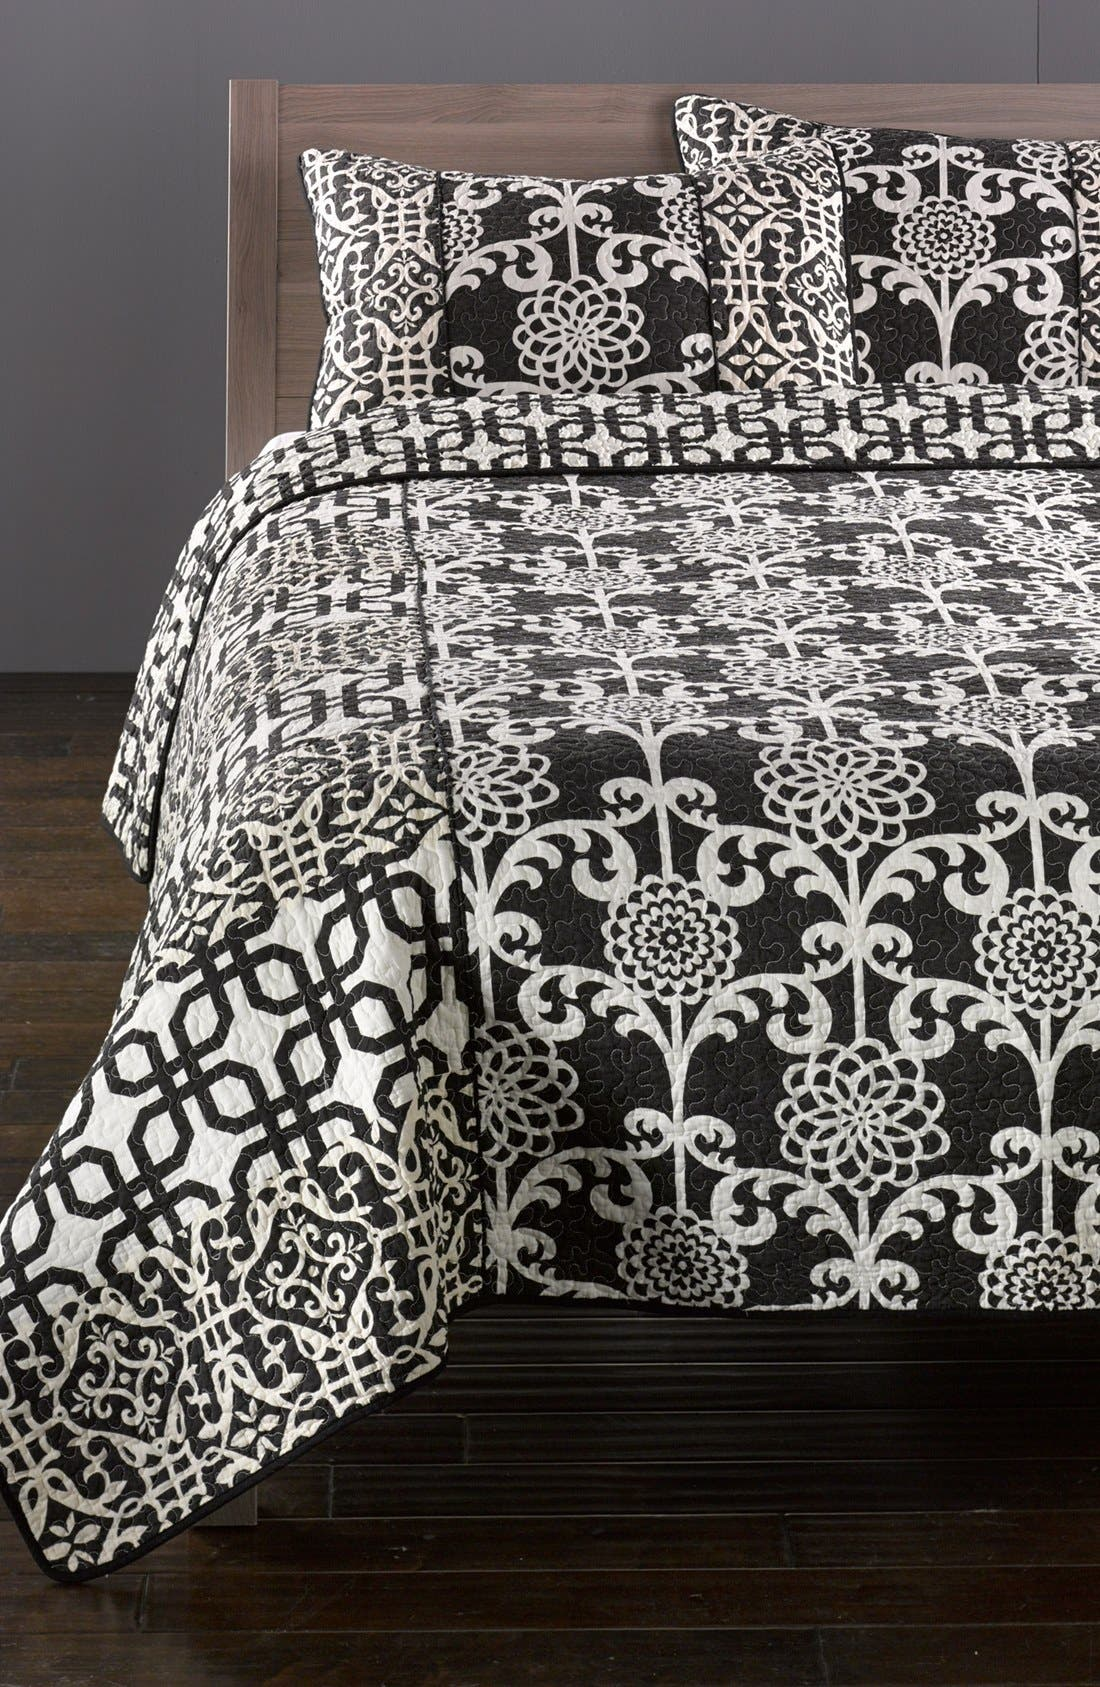 Alternate Image 1 Selected - Hedaya Home Fashions 'Carlton' Reversible Quilt